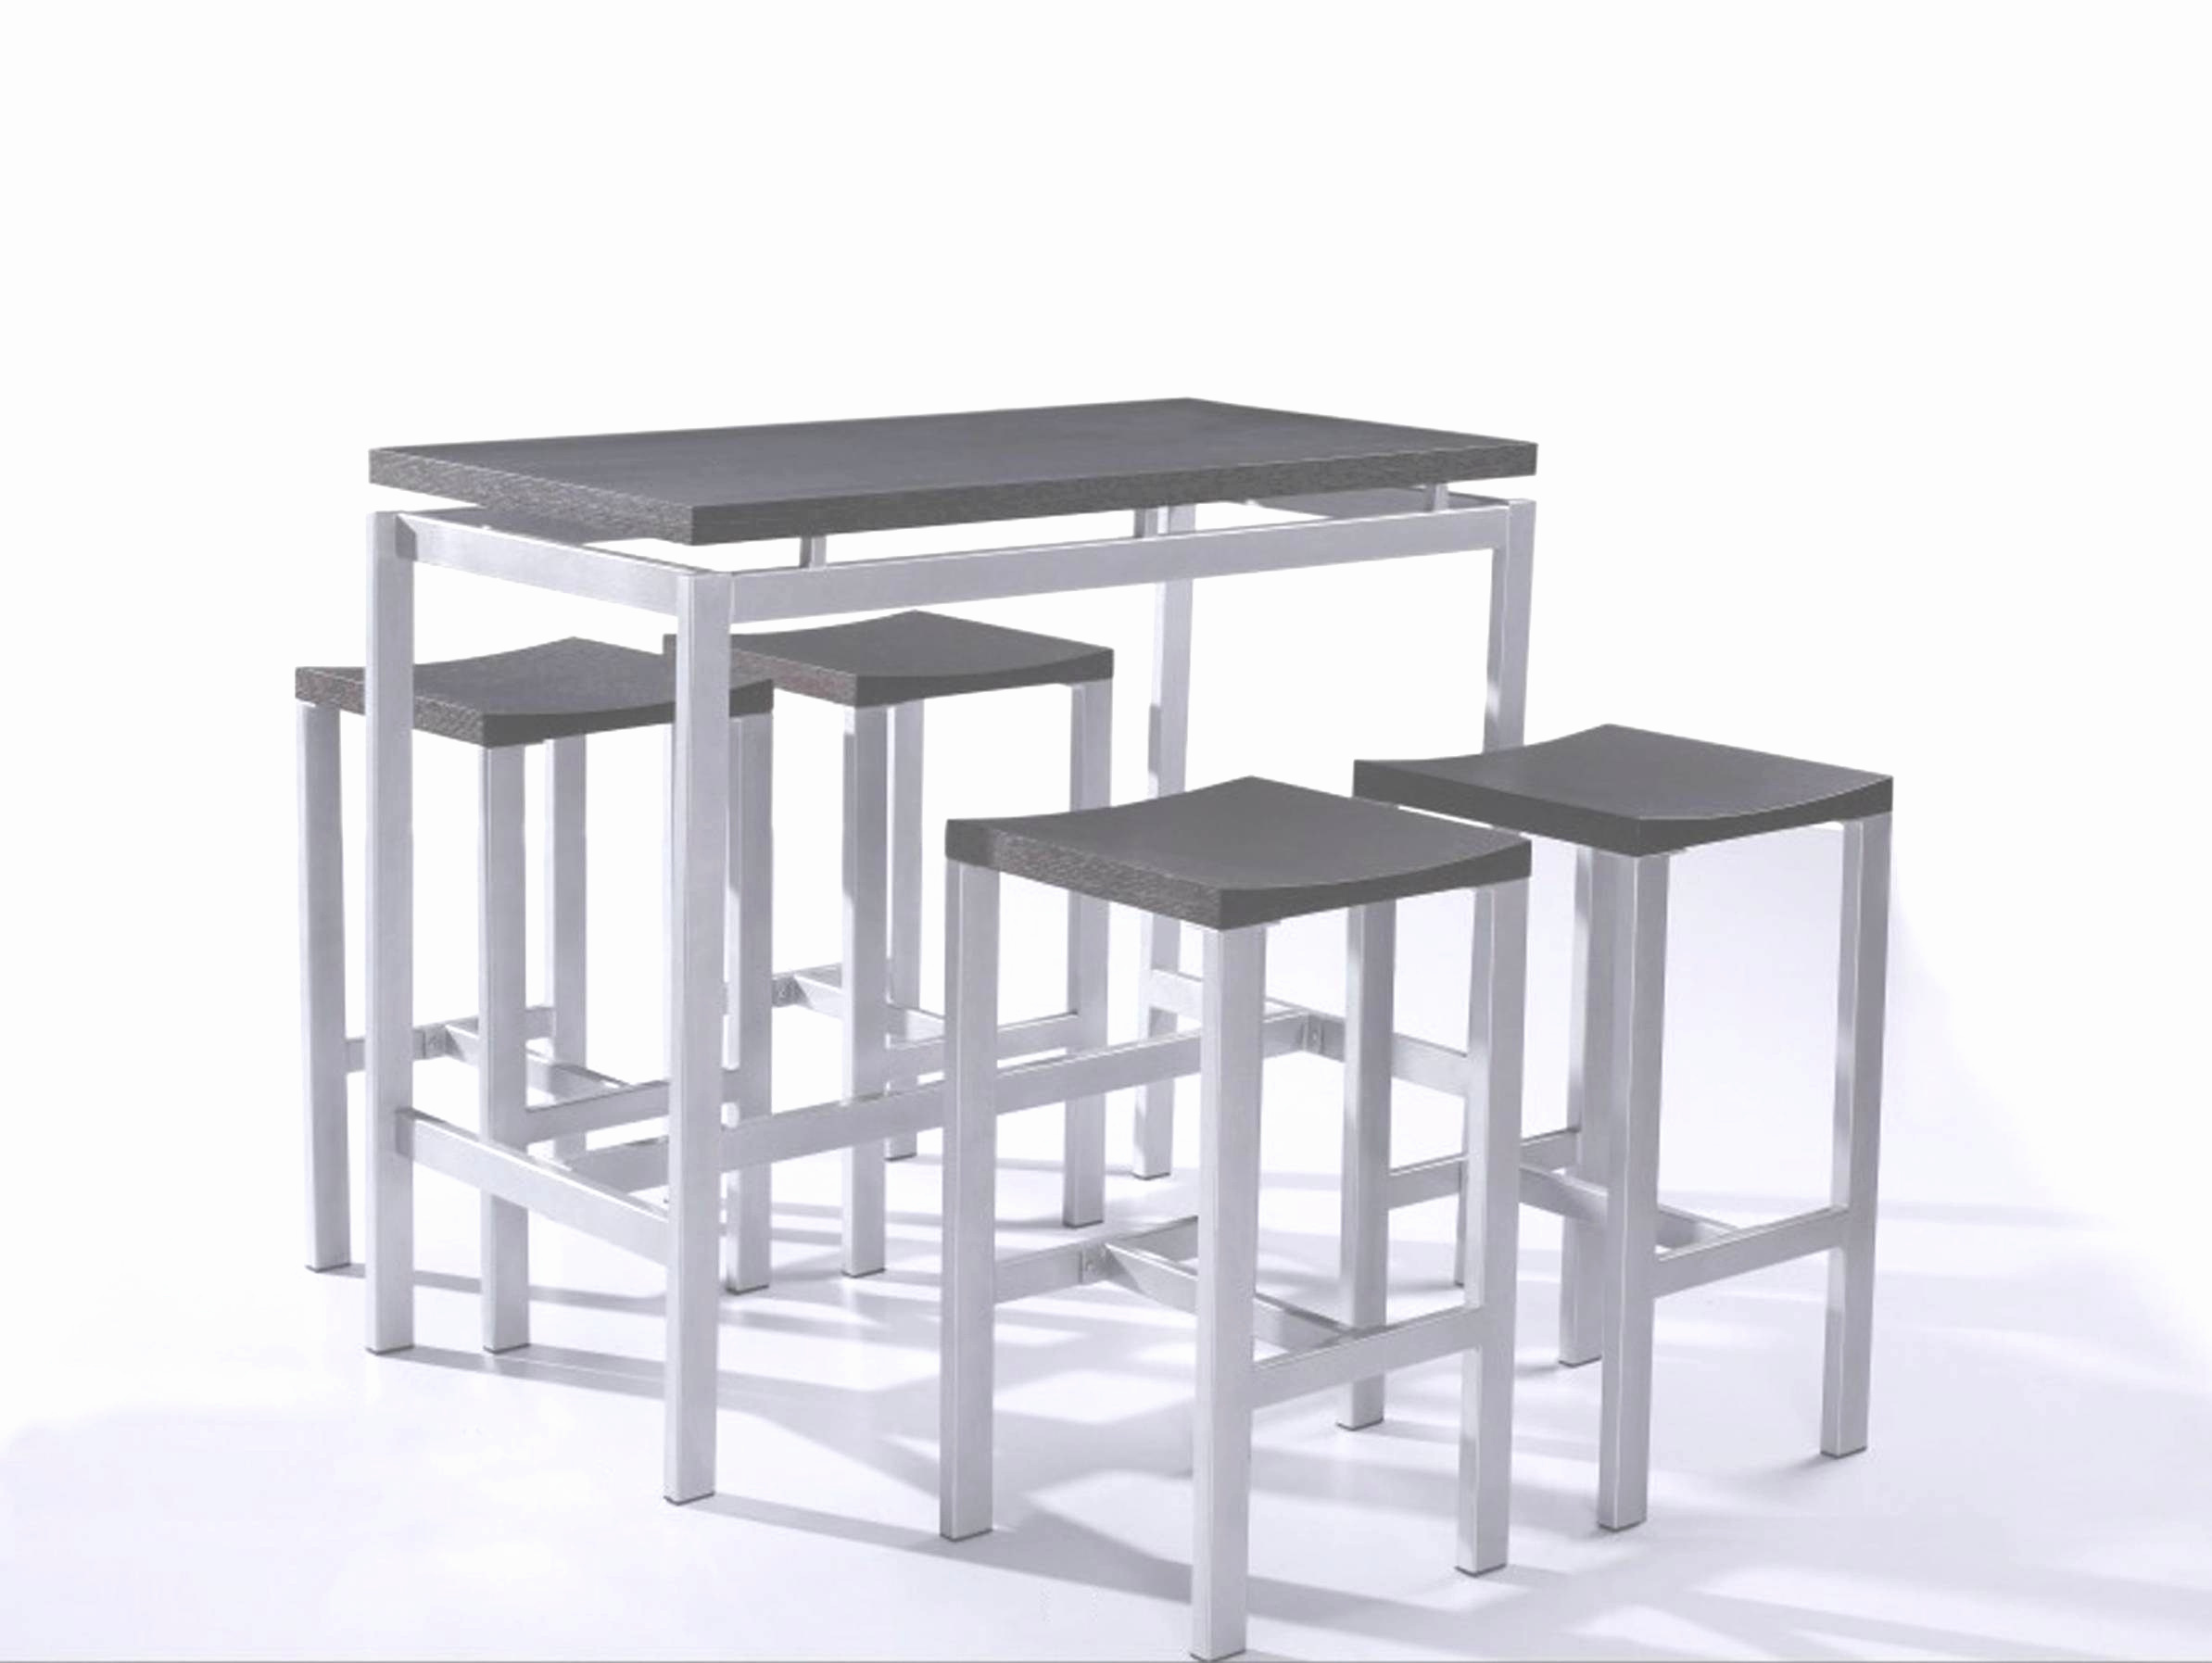 table ronde tulipe source dinspiration table pied tulipe luxe table ronde tulipe beau chaises tulipe 0d of table ronde tulipe